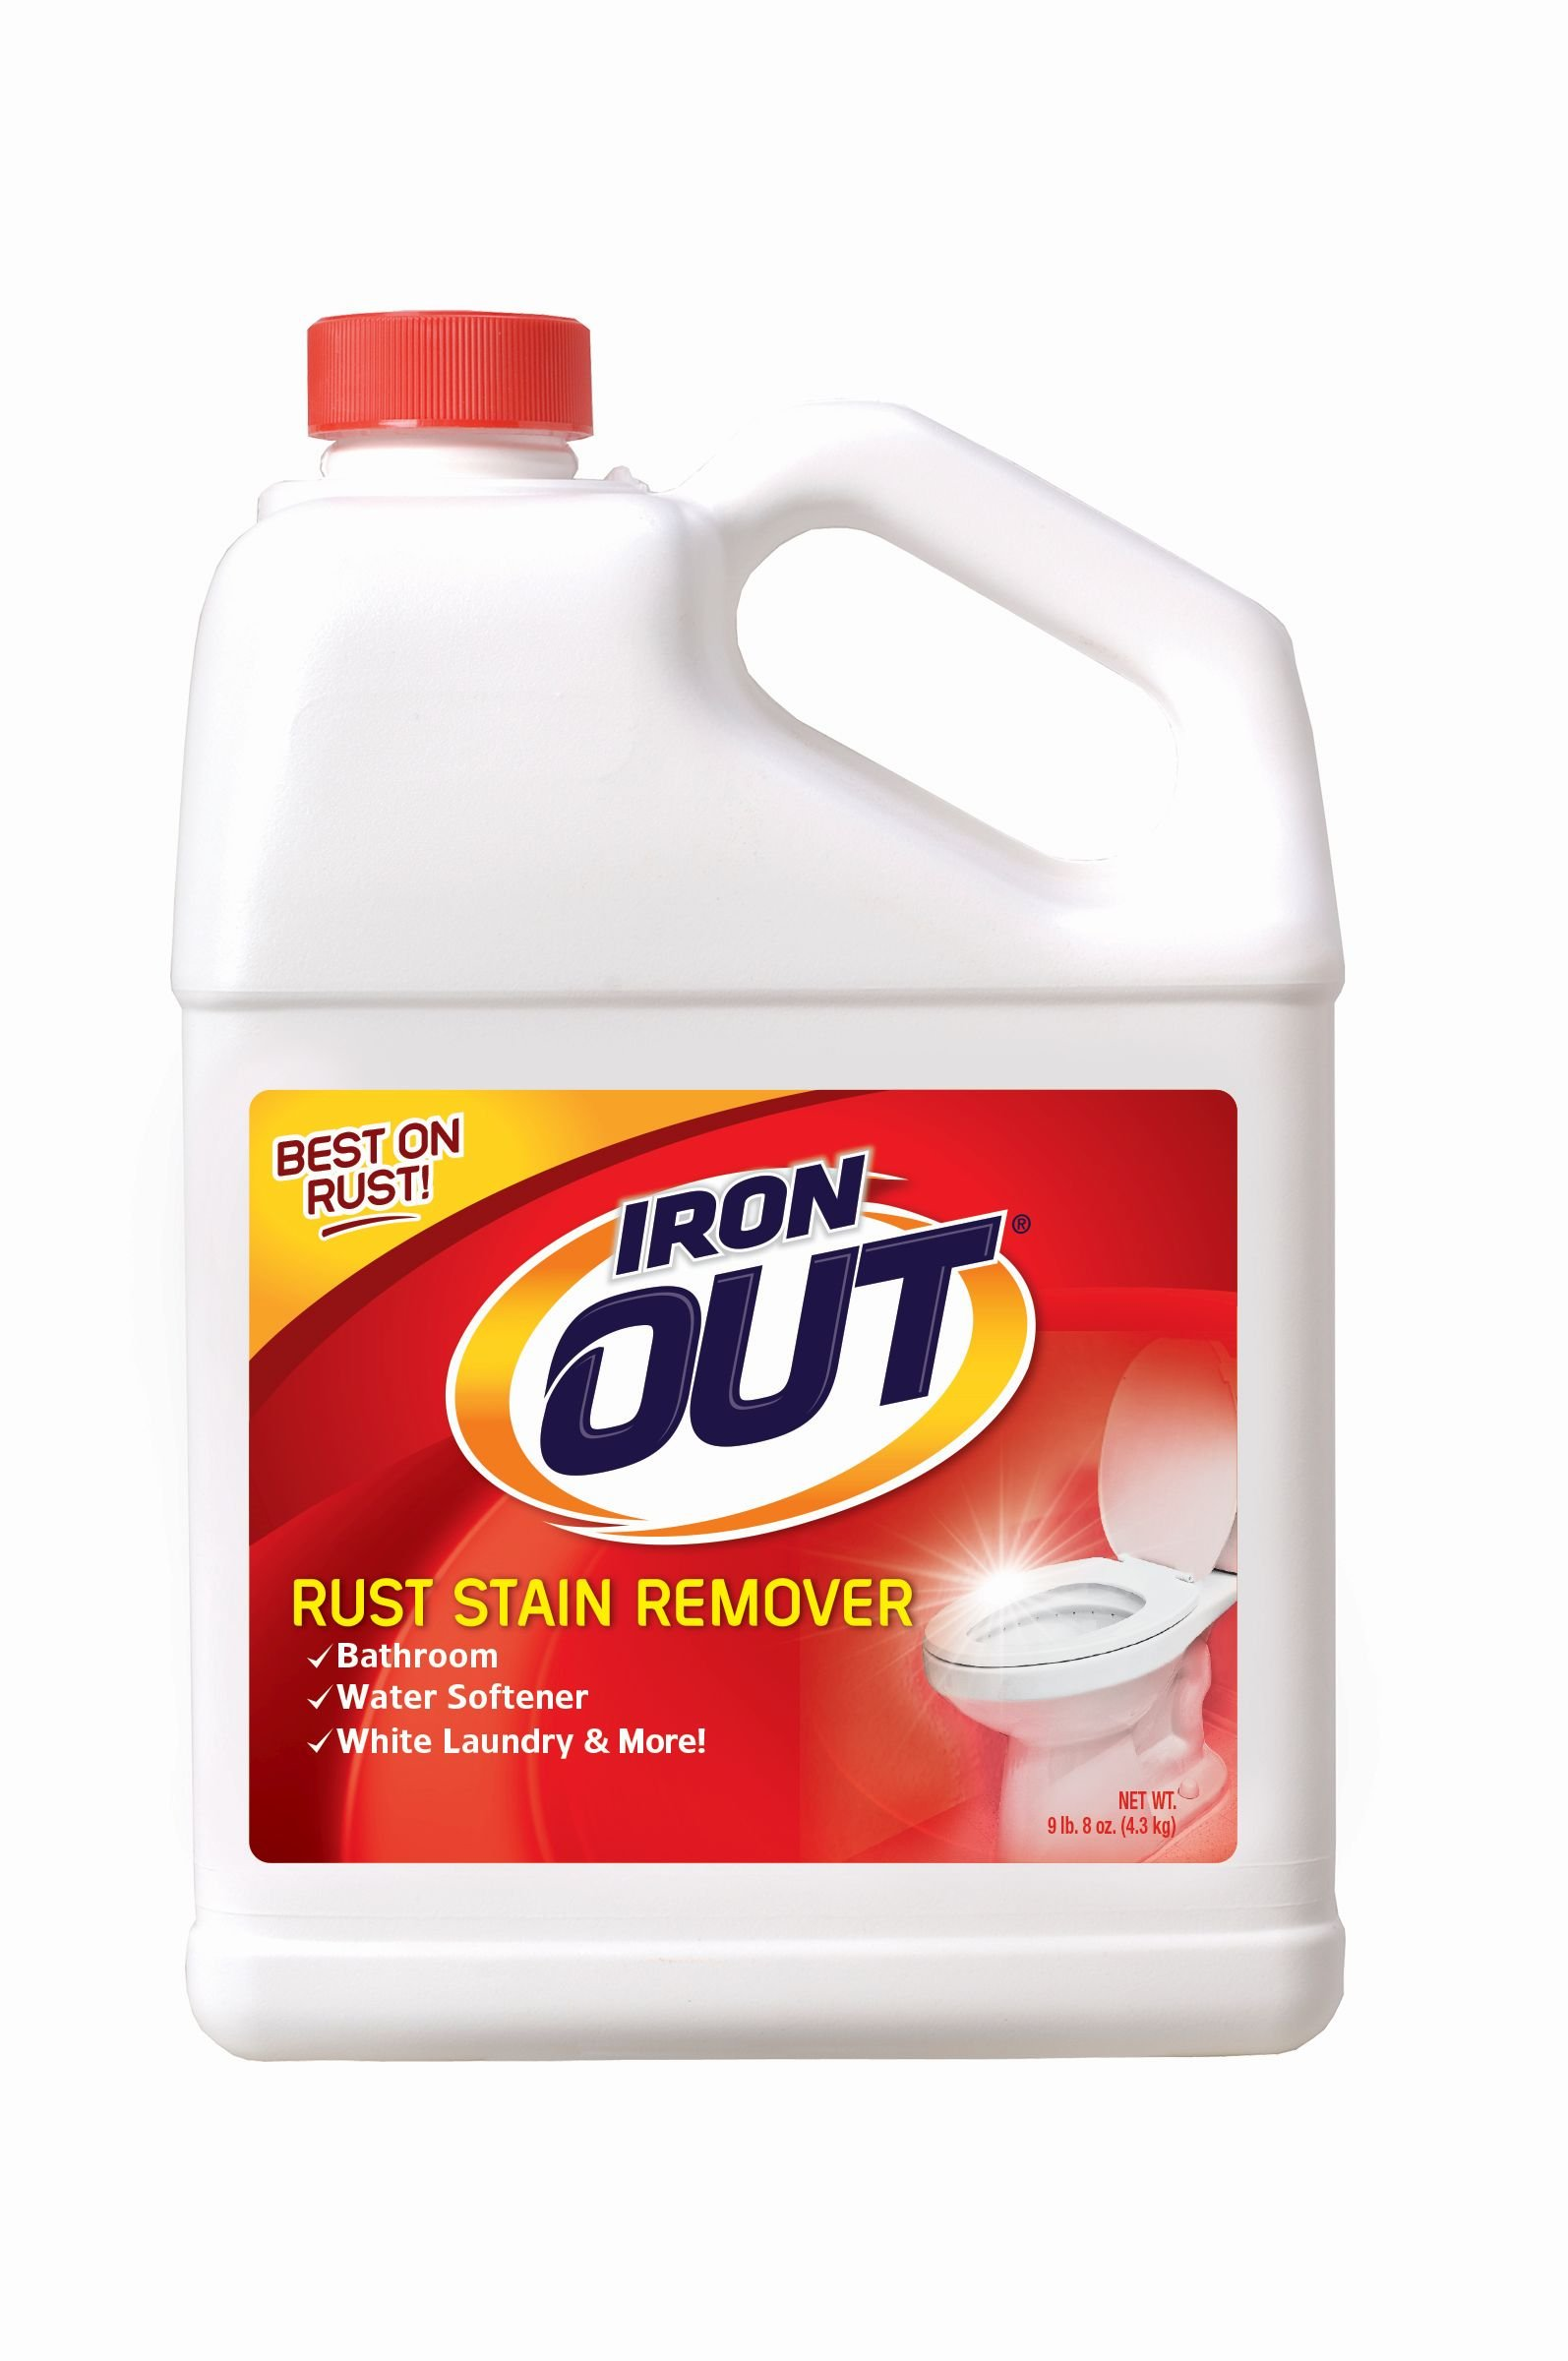 Iron OUT Rust Stain Remover Powder, 9 lb. 8 oz. Bottle, 4 Pack